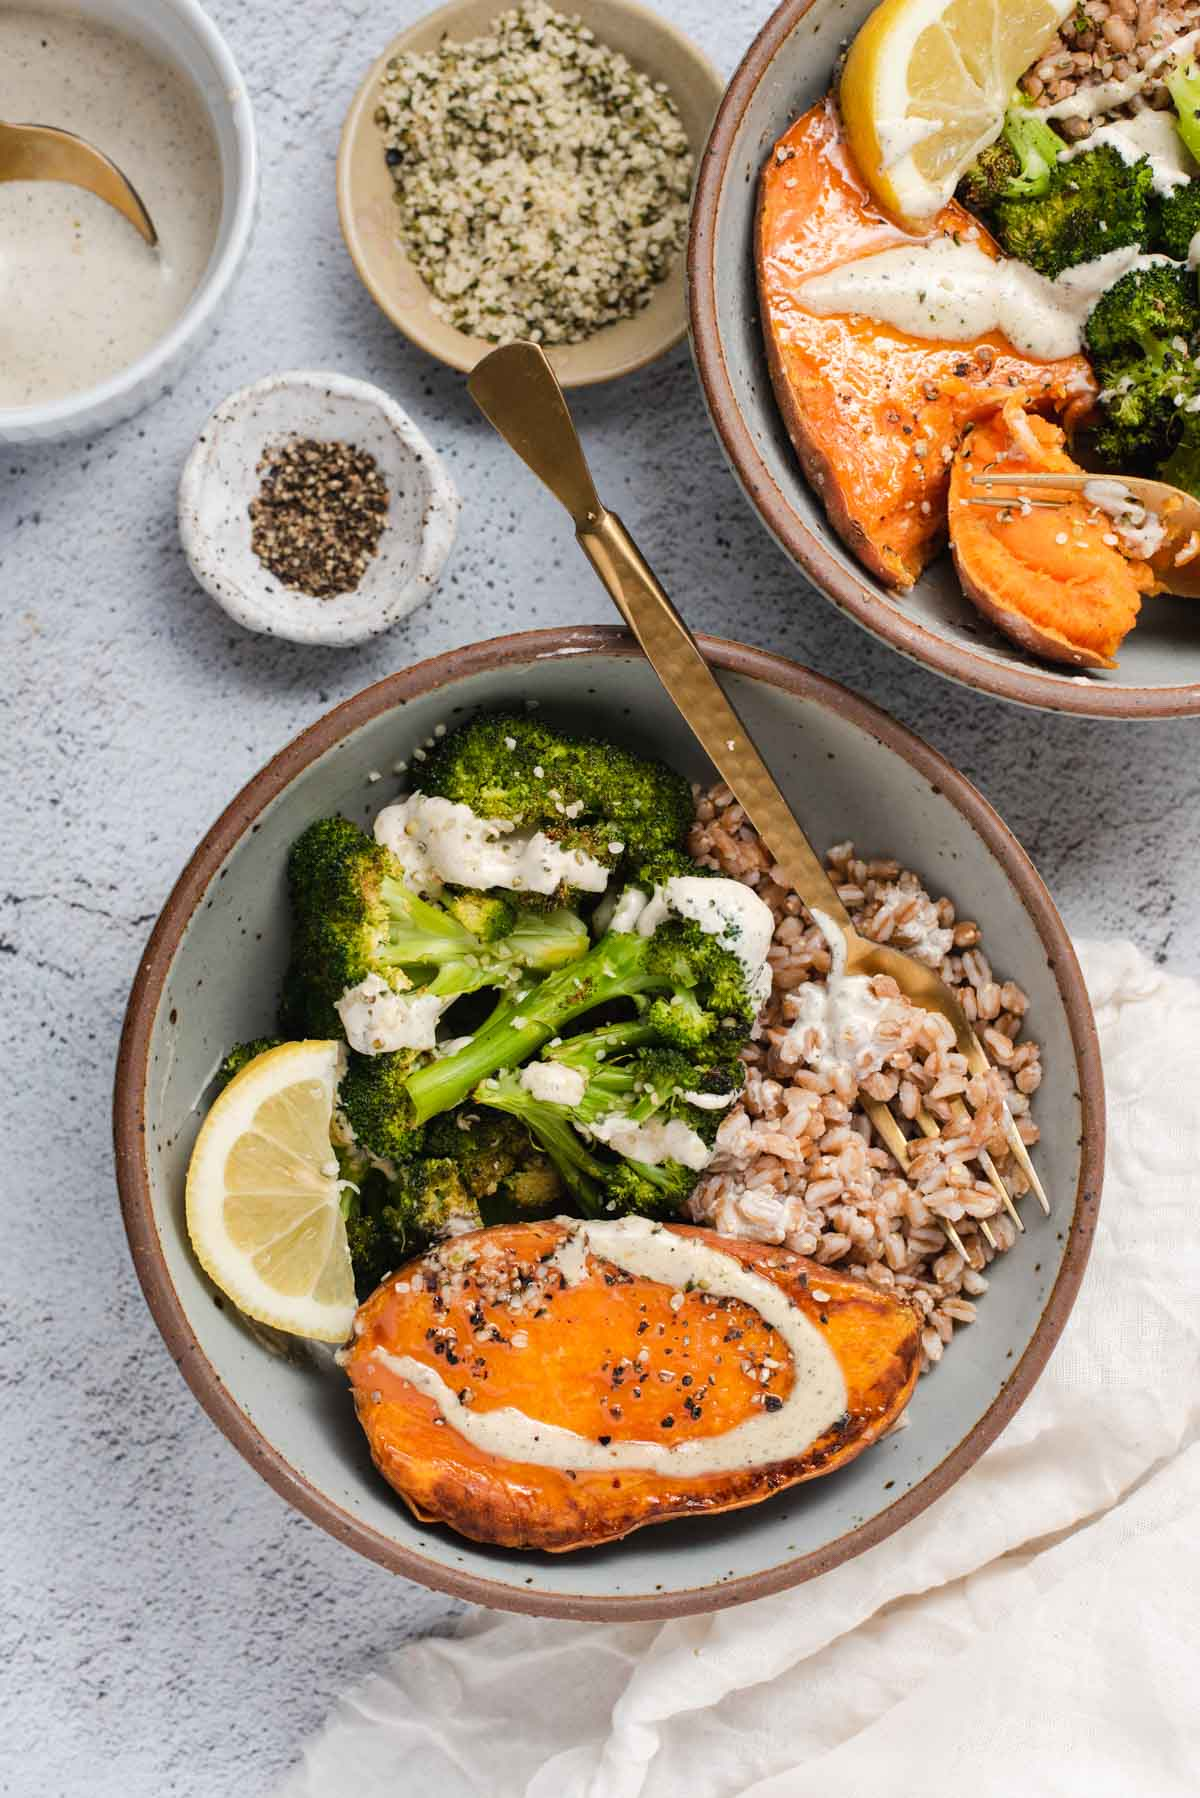 Overhead view of gray bowl filled with sweet potato half, farro and broccoli